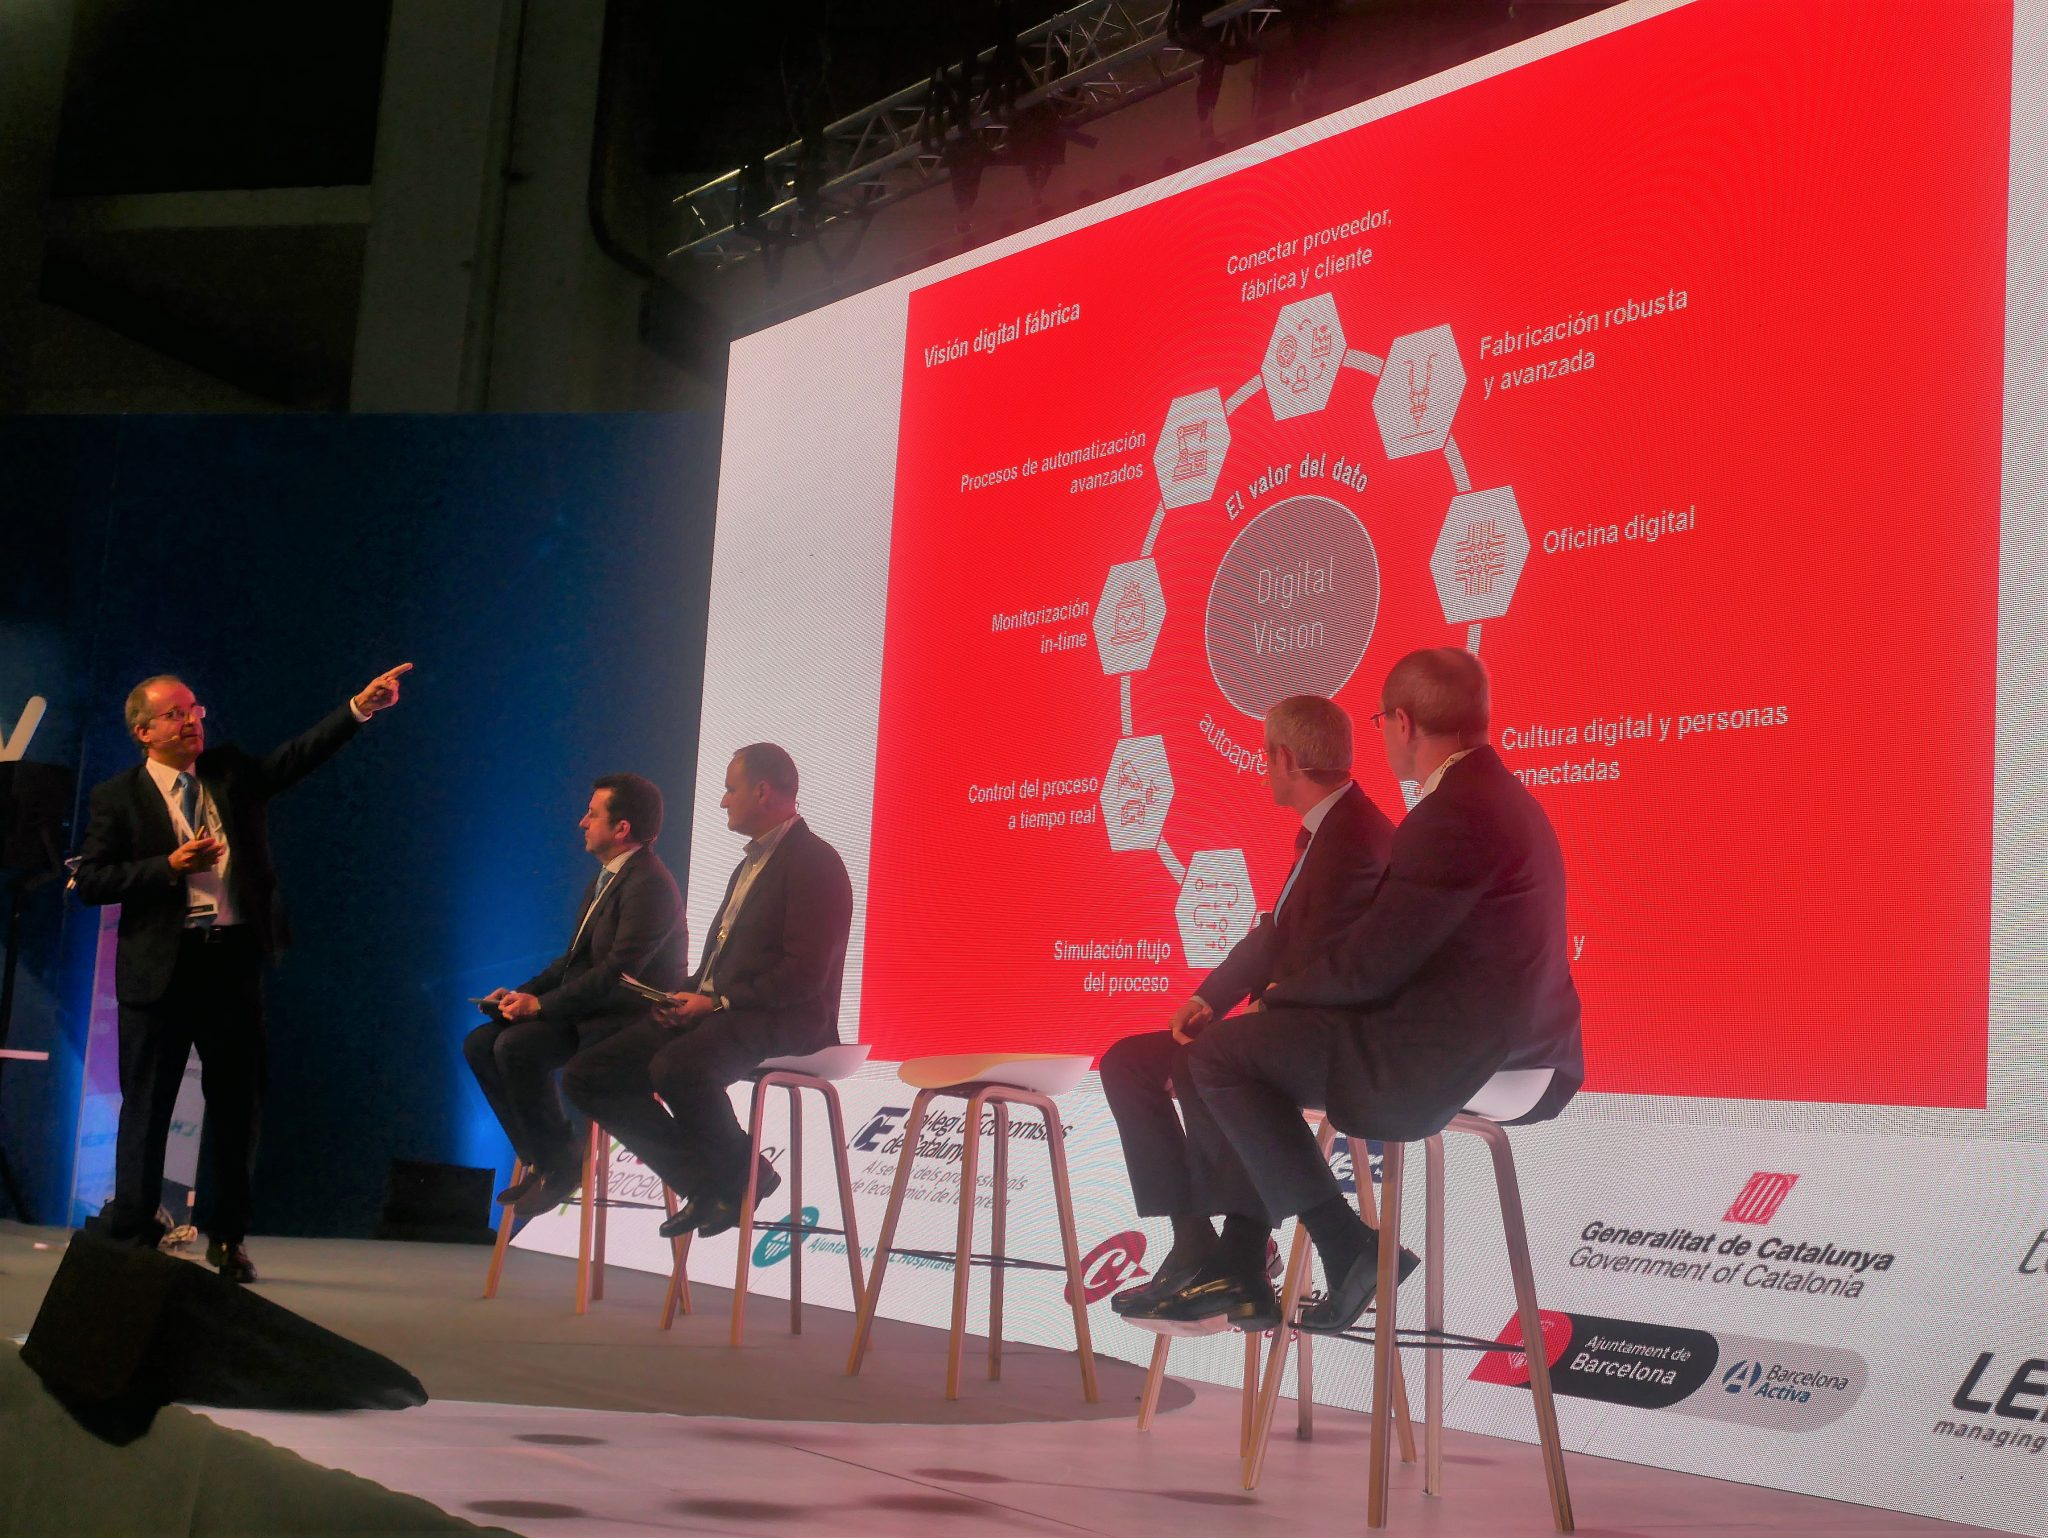 Ramón Paricio Hernández, Production Manager at SEAT, showing the company's digital vision. Photo by Tia Vialva.